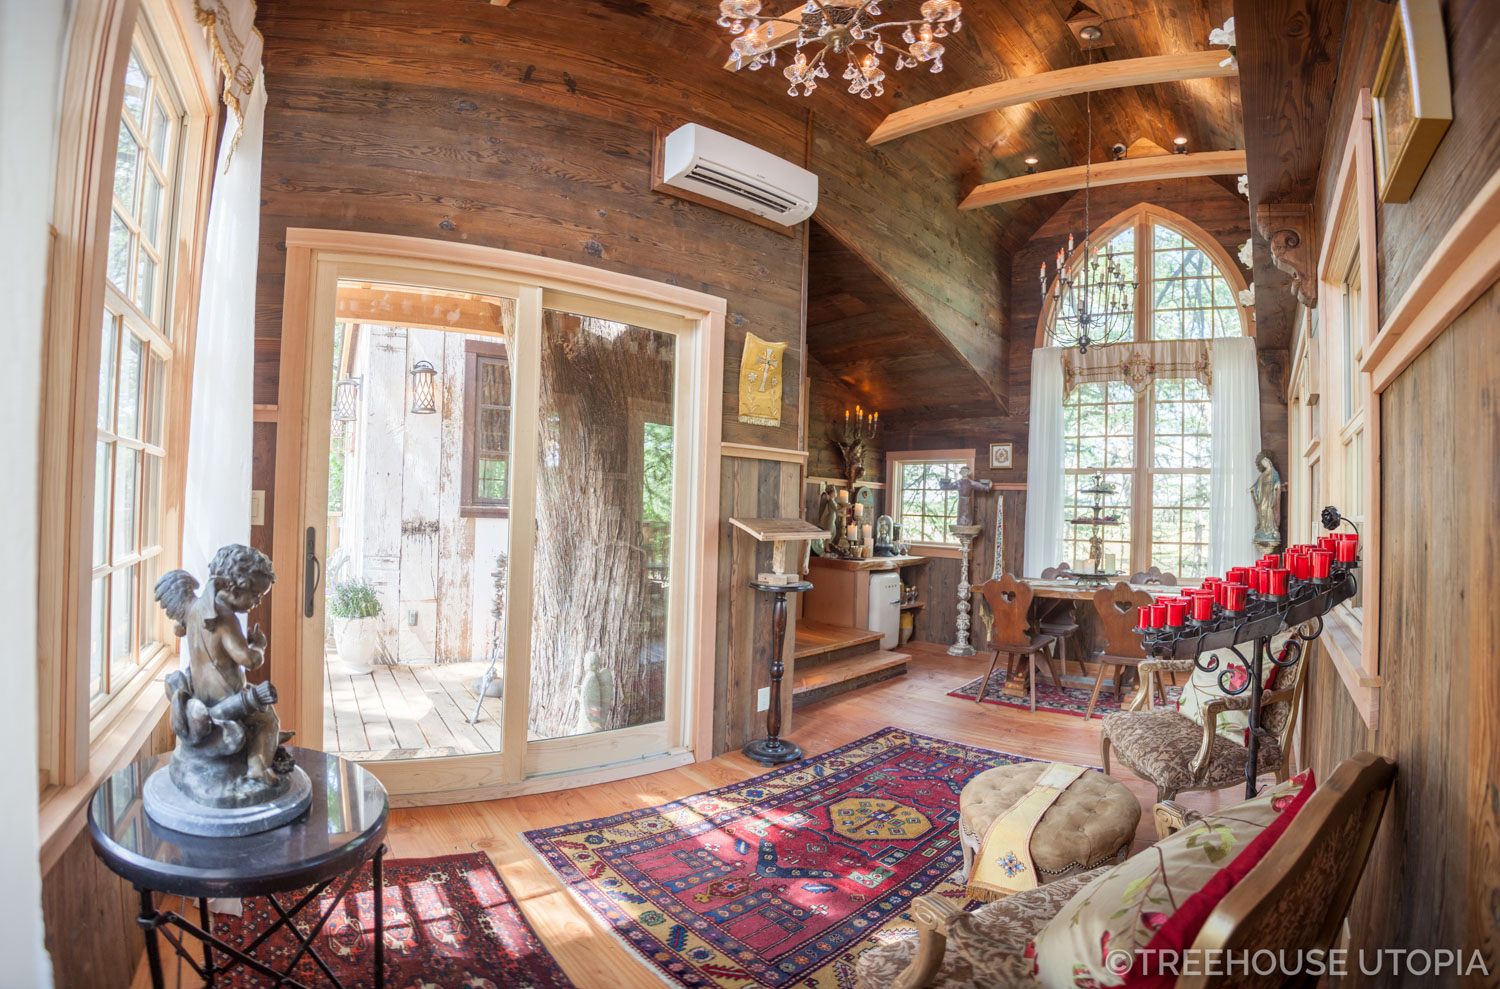 Inside Chapelle at Treehouse Utopia, a Texas Hill Country Retreat. Photo by Nelson Treehouse.